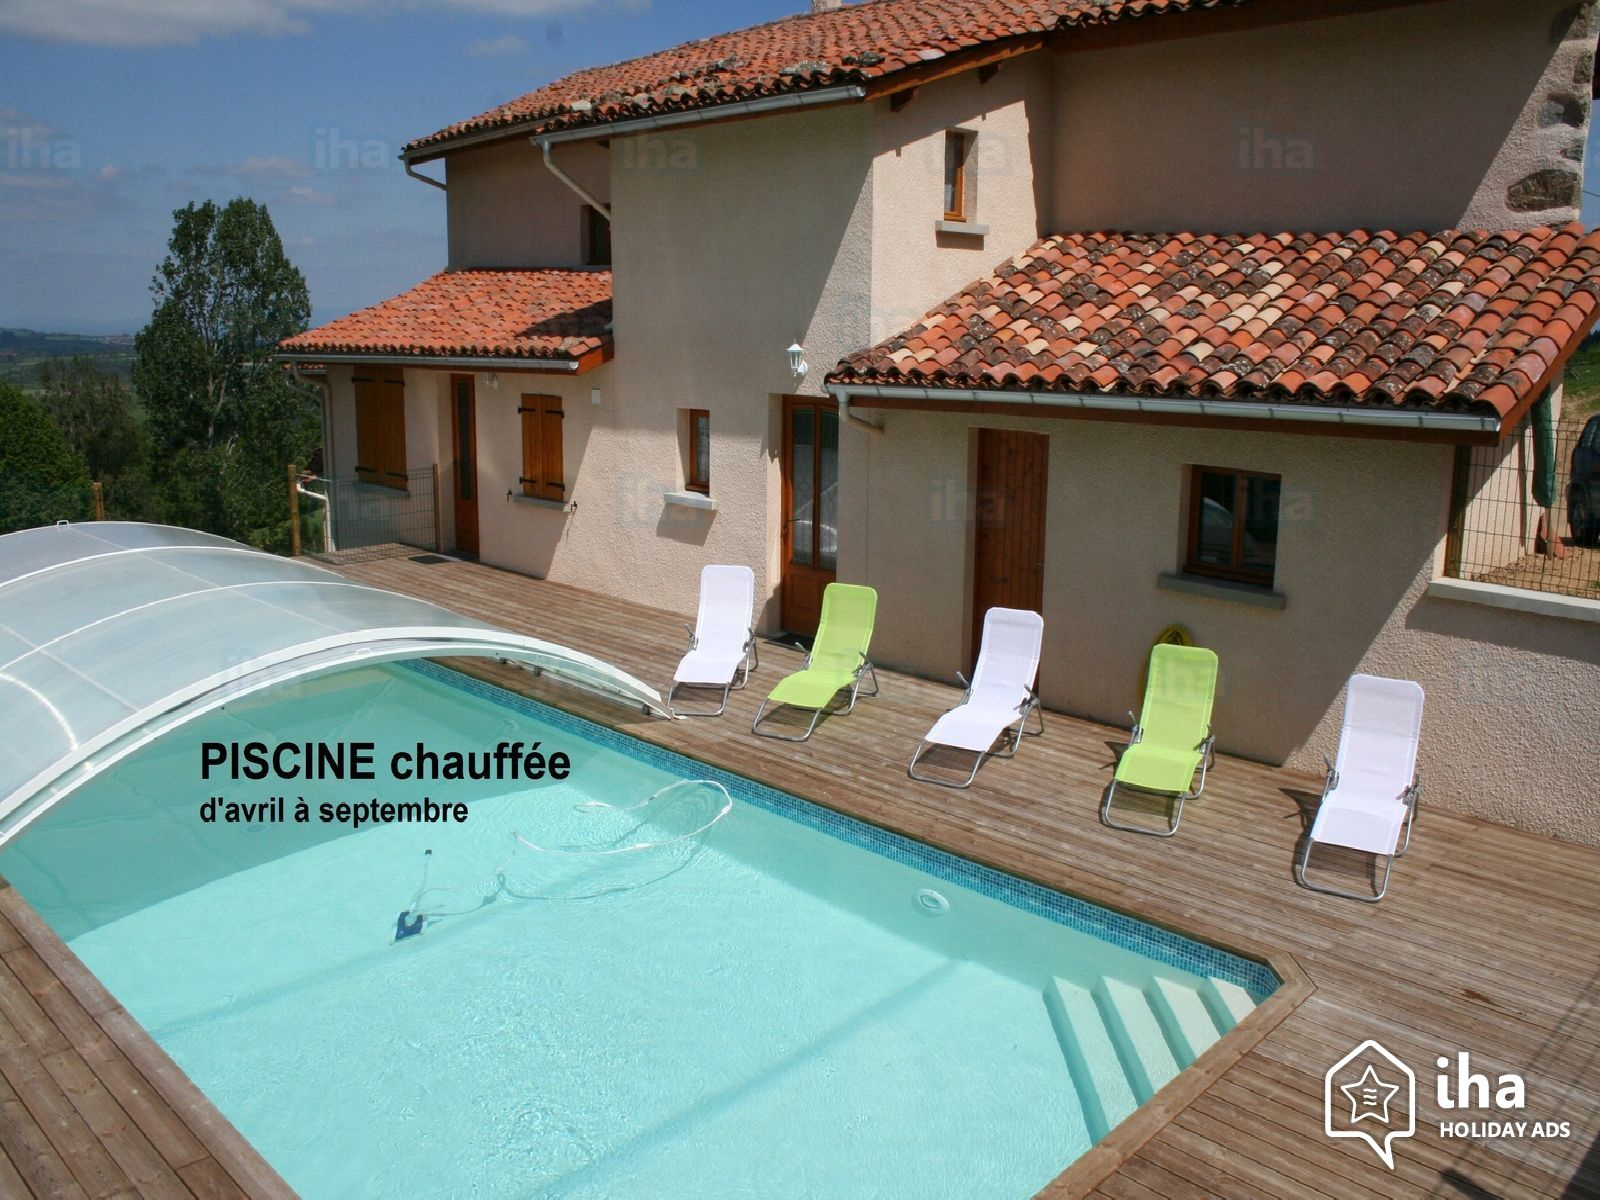 6 Bedrooms Gîte - Self Catering For Rent From 1 To 12 People serapportantà Piscine St Priest